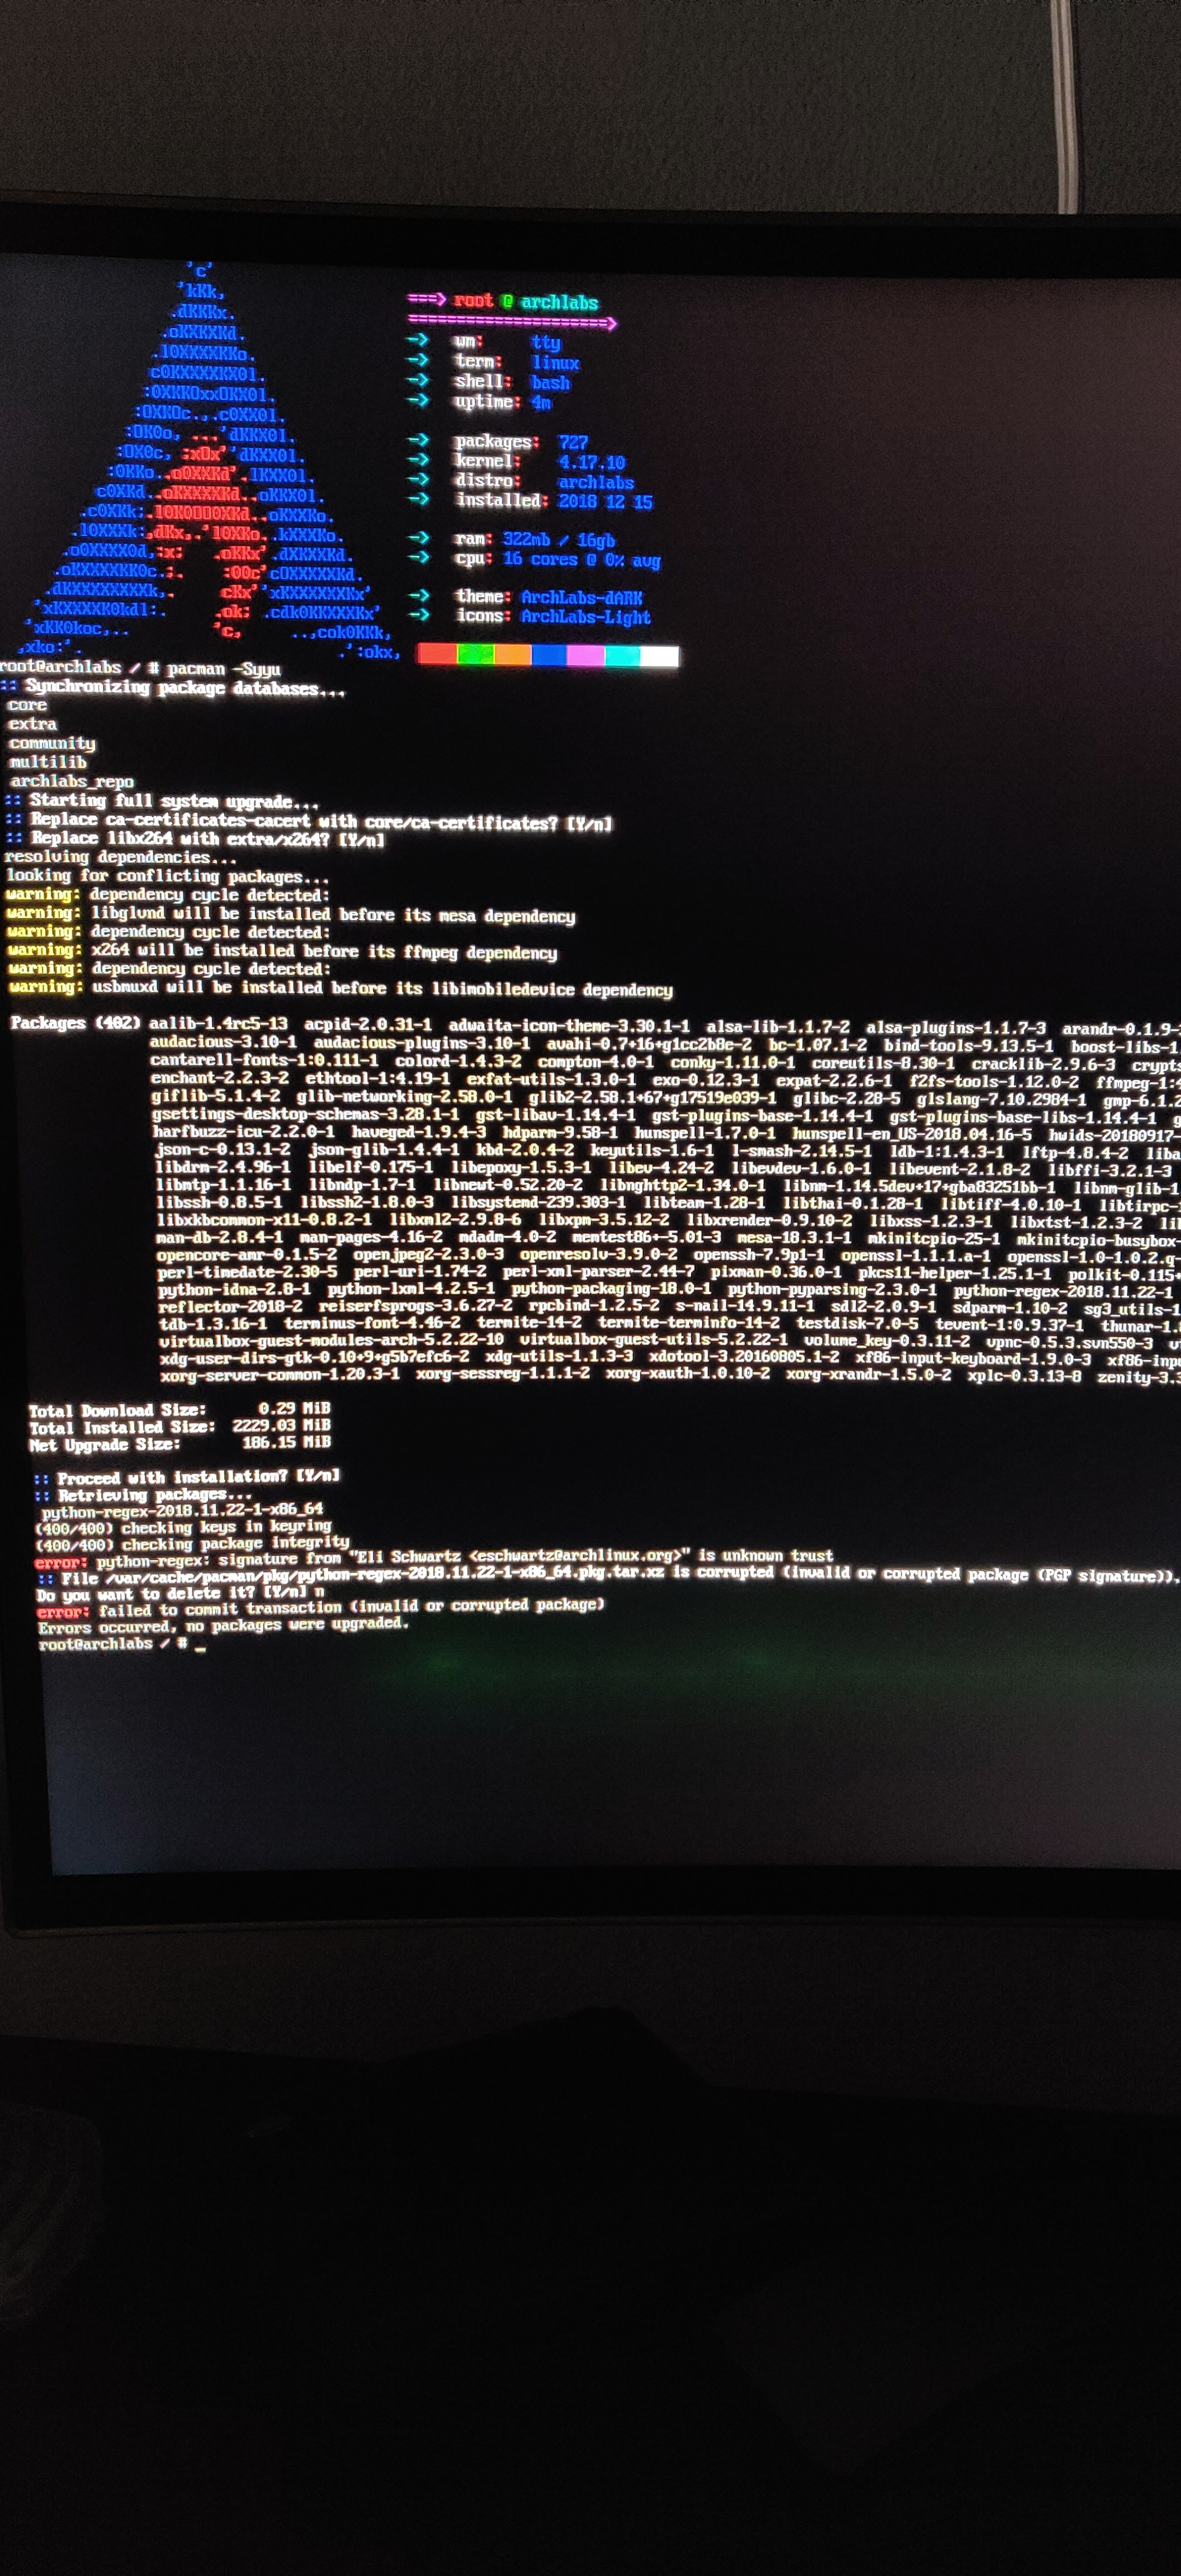 Doesn't boot after fresh install - Technical Issues & Assistance